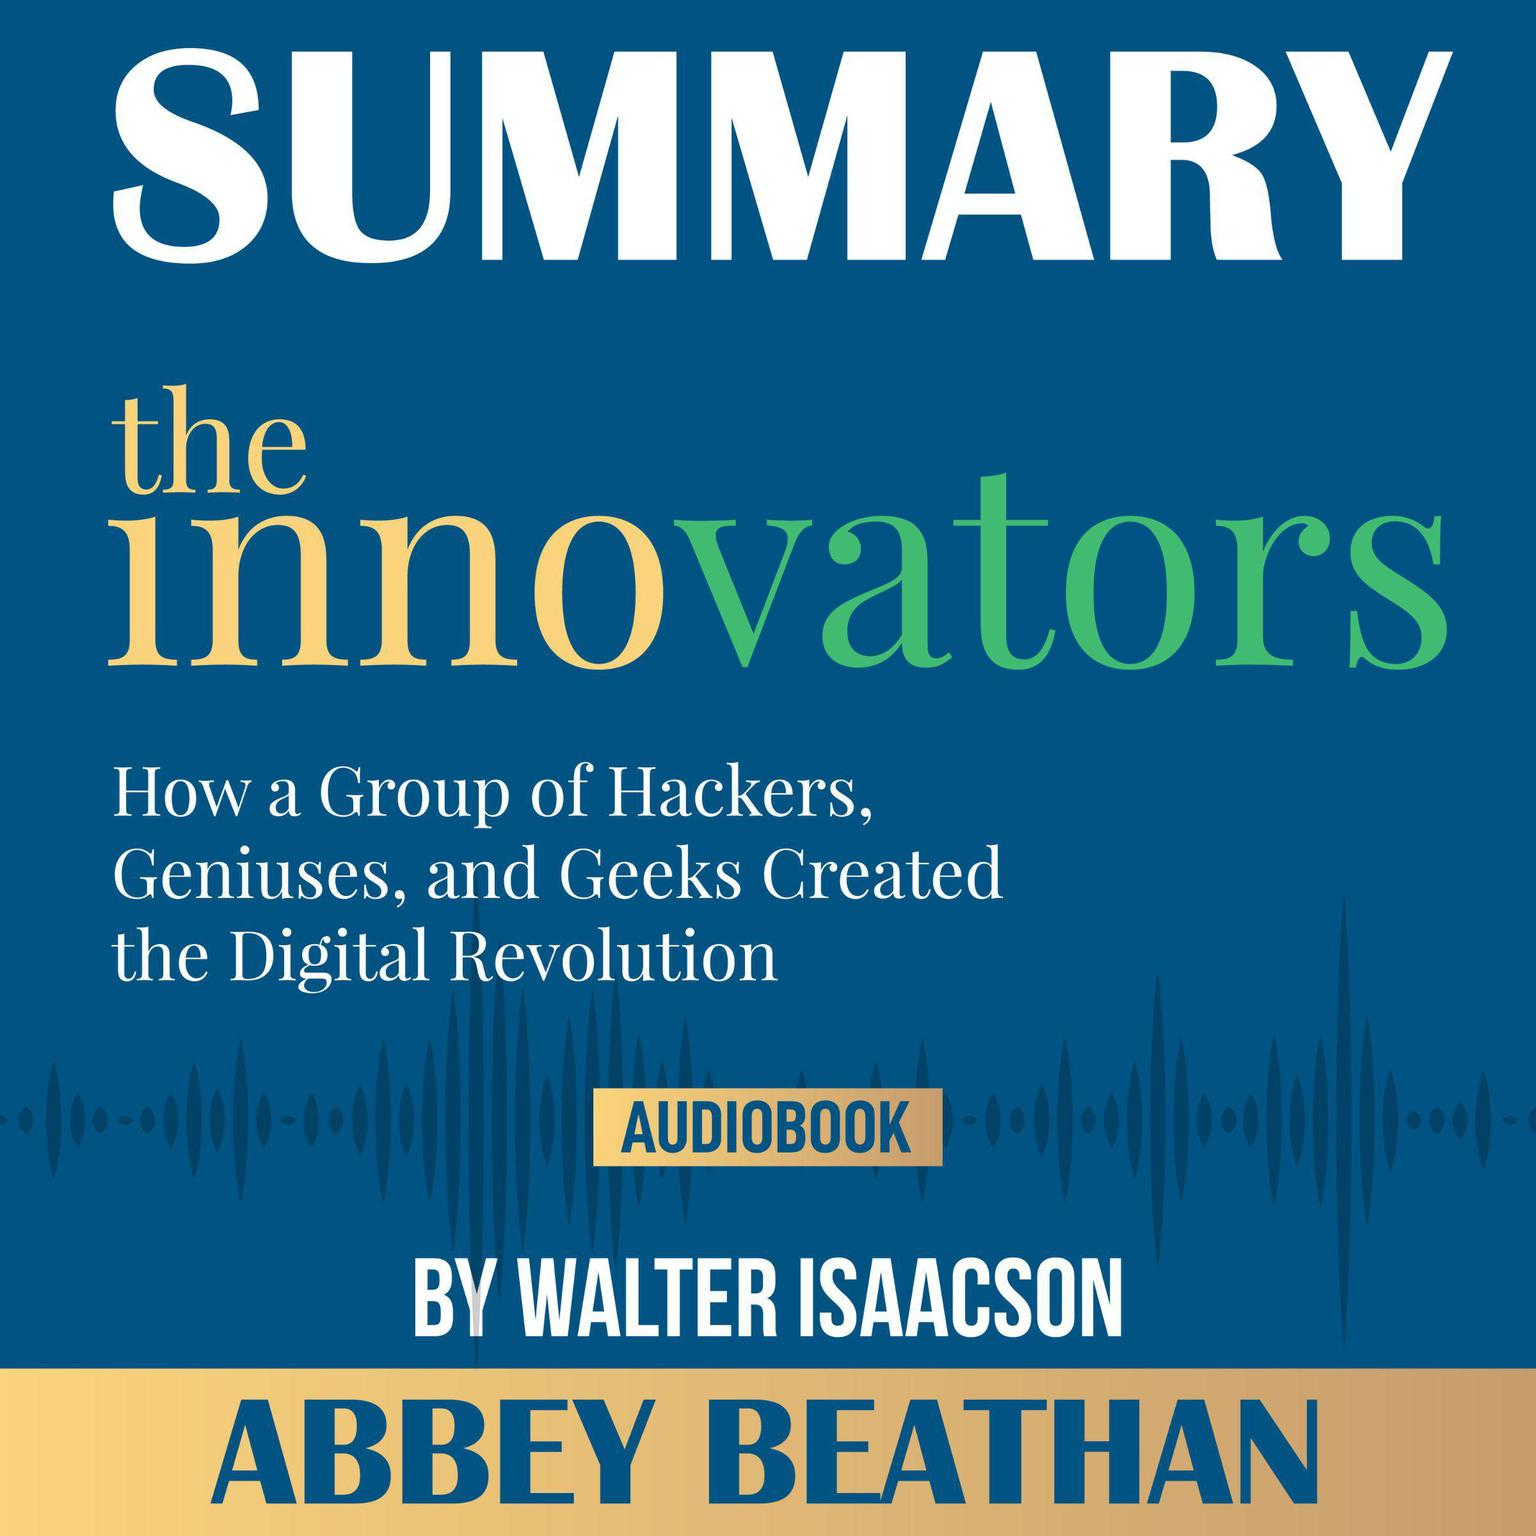 Printable Summary of The Innovators: How a Group of Hackers, Geniuses, and Geeks Created the Digital Revolution by Walter Isaacson Audiobook Cover Art